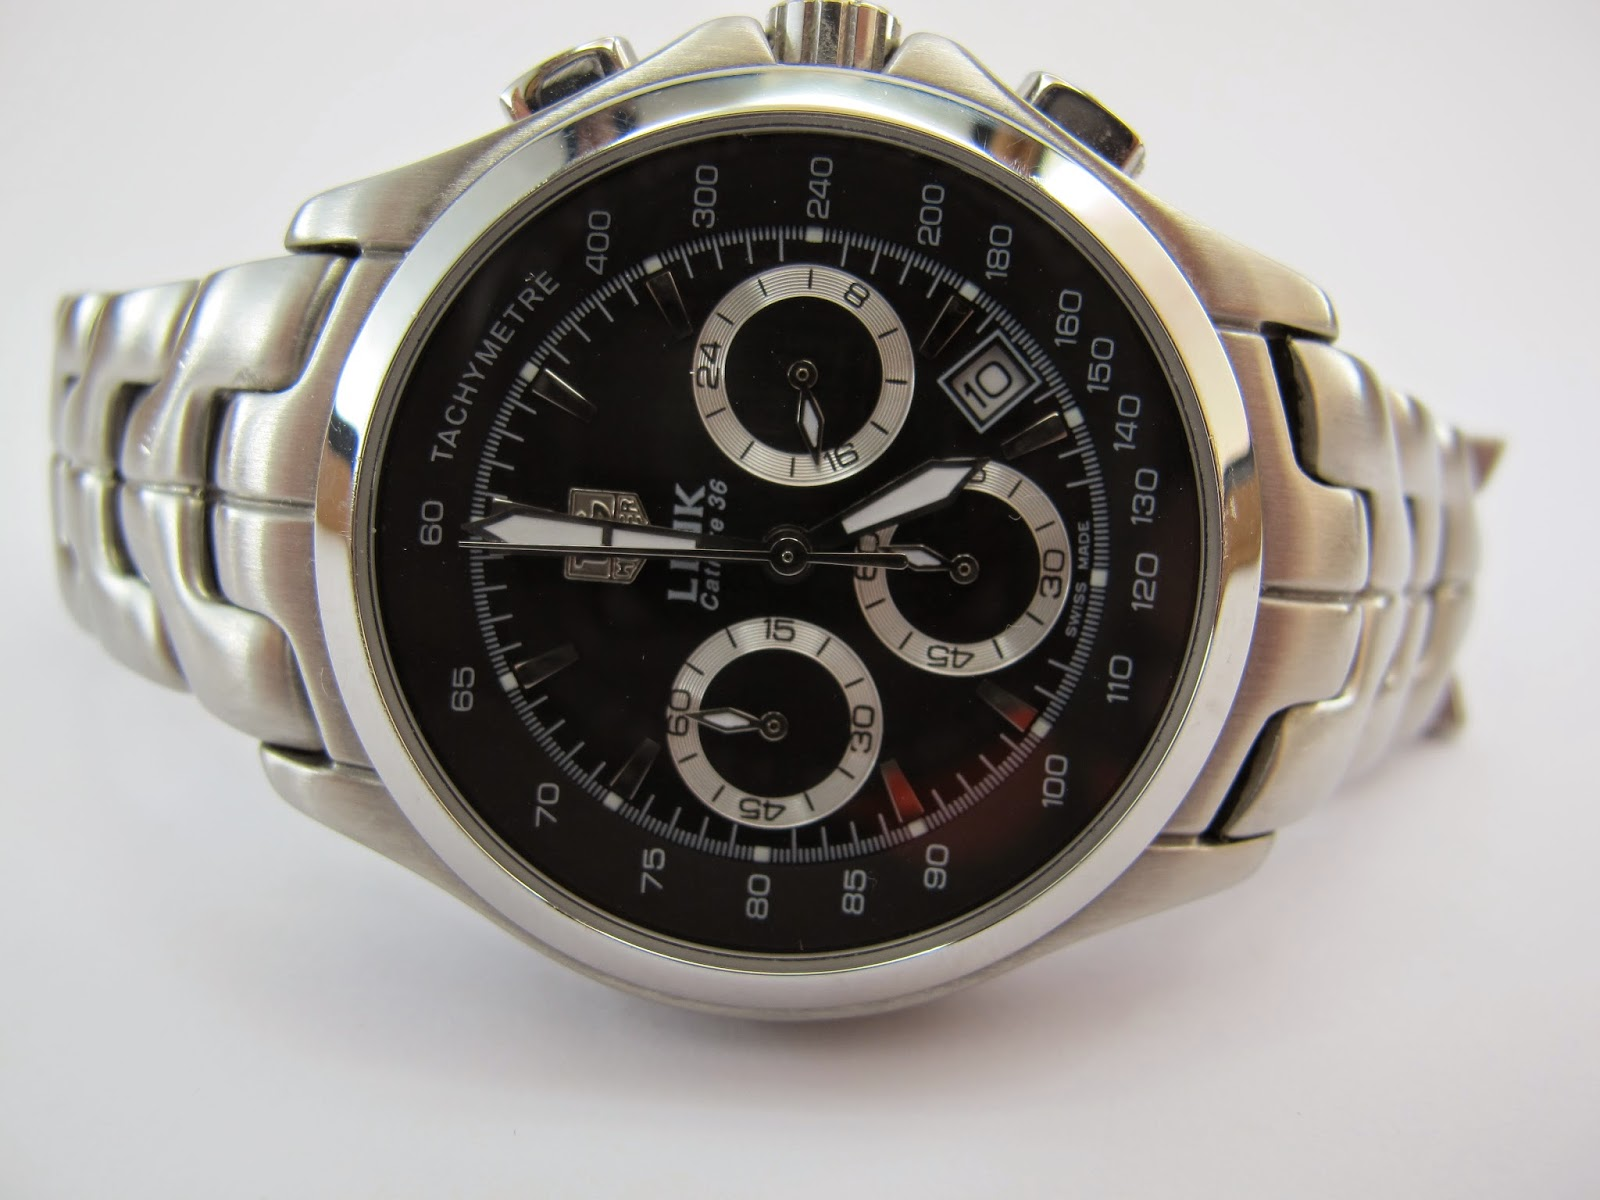 Watchopenia: Not Really A Tag Heuer; Not Really A Limited